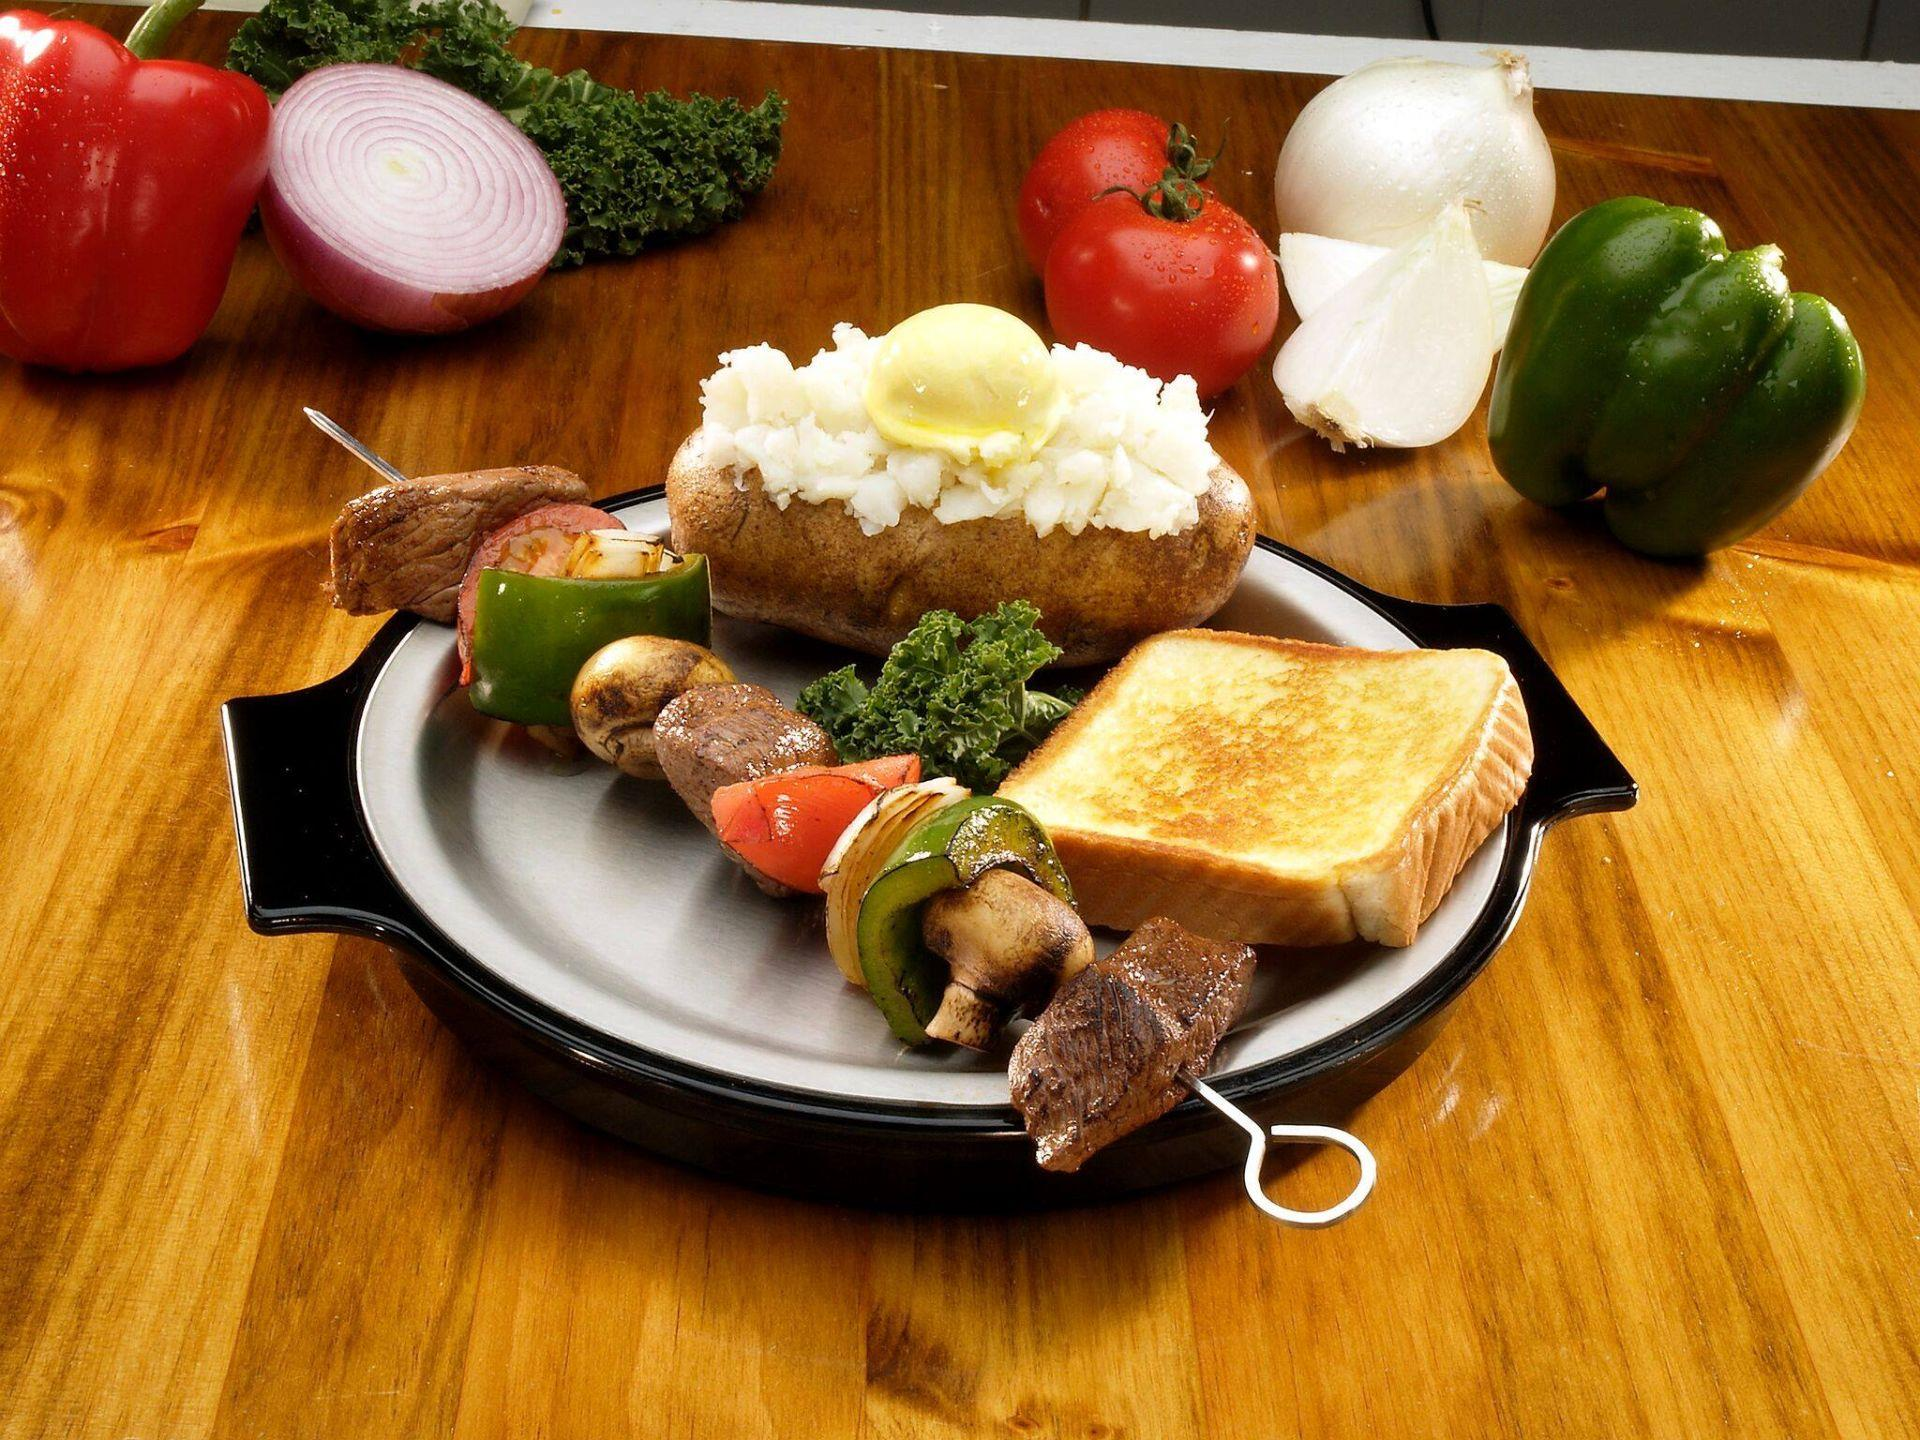 Steak and pepper skewer with baked potato and Texas toast